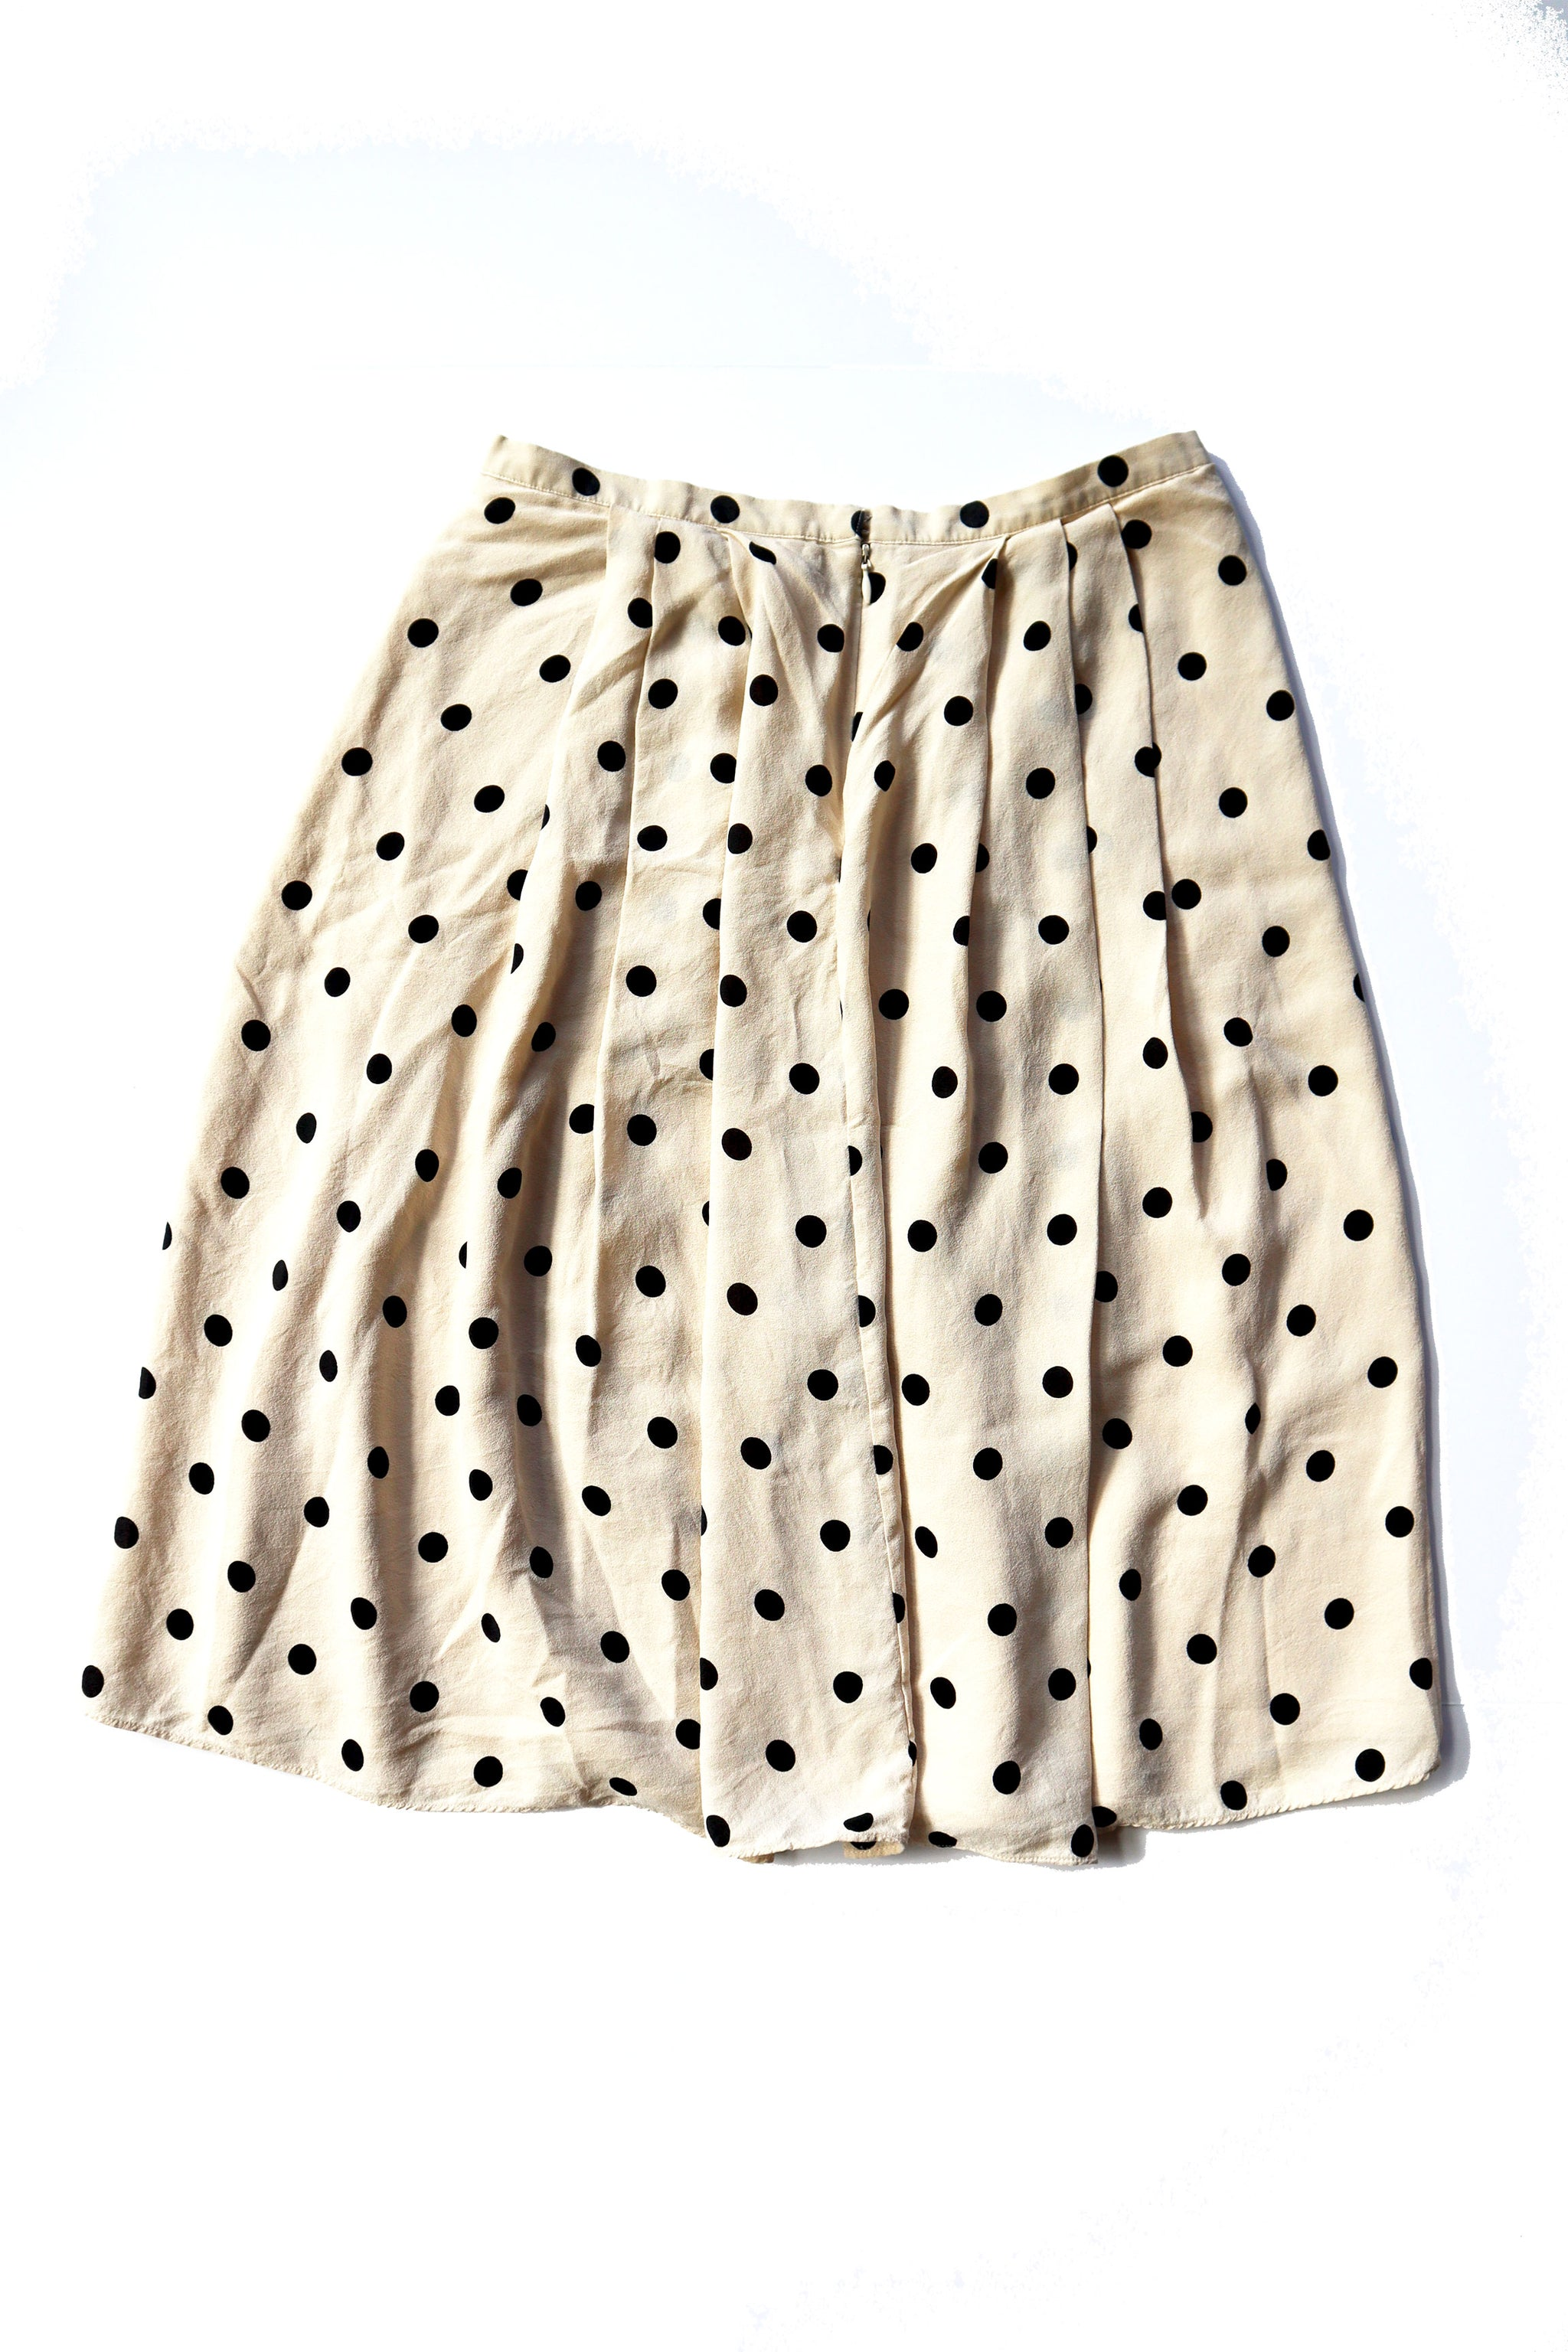 The Limited Silk Gauzy Cream Polka Dot Midi Skirt